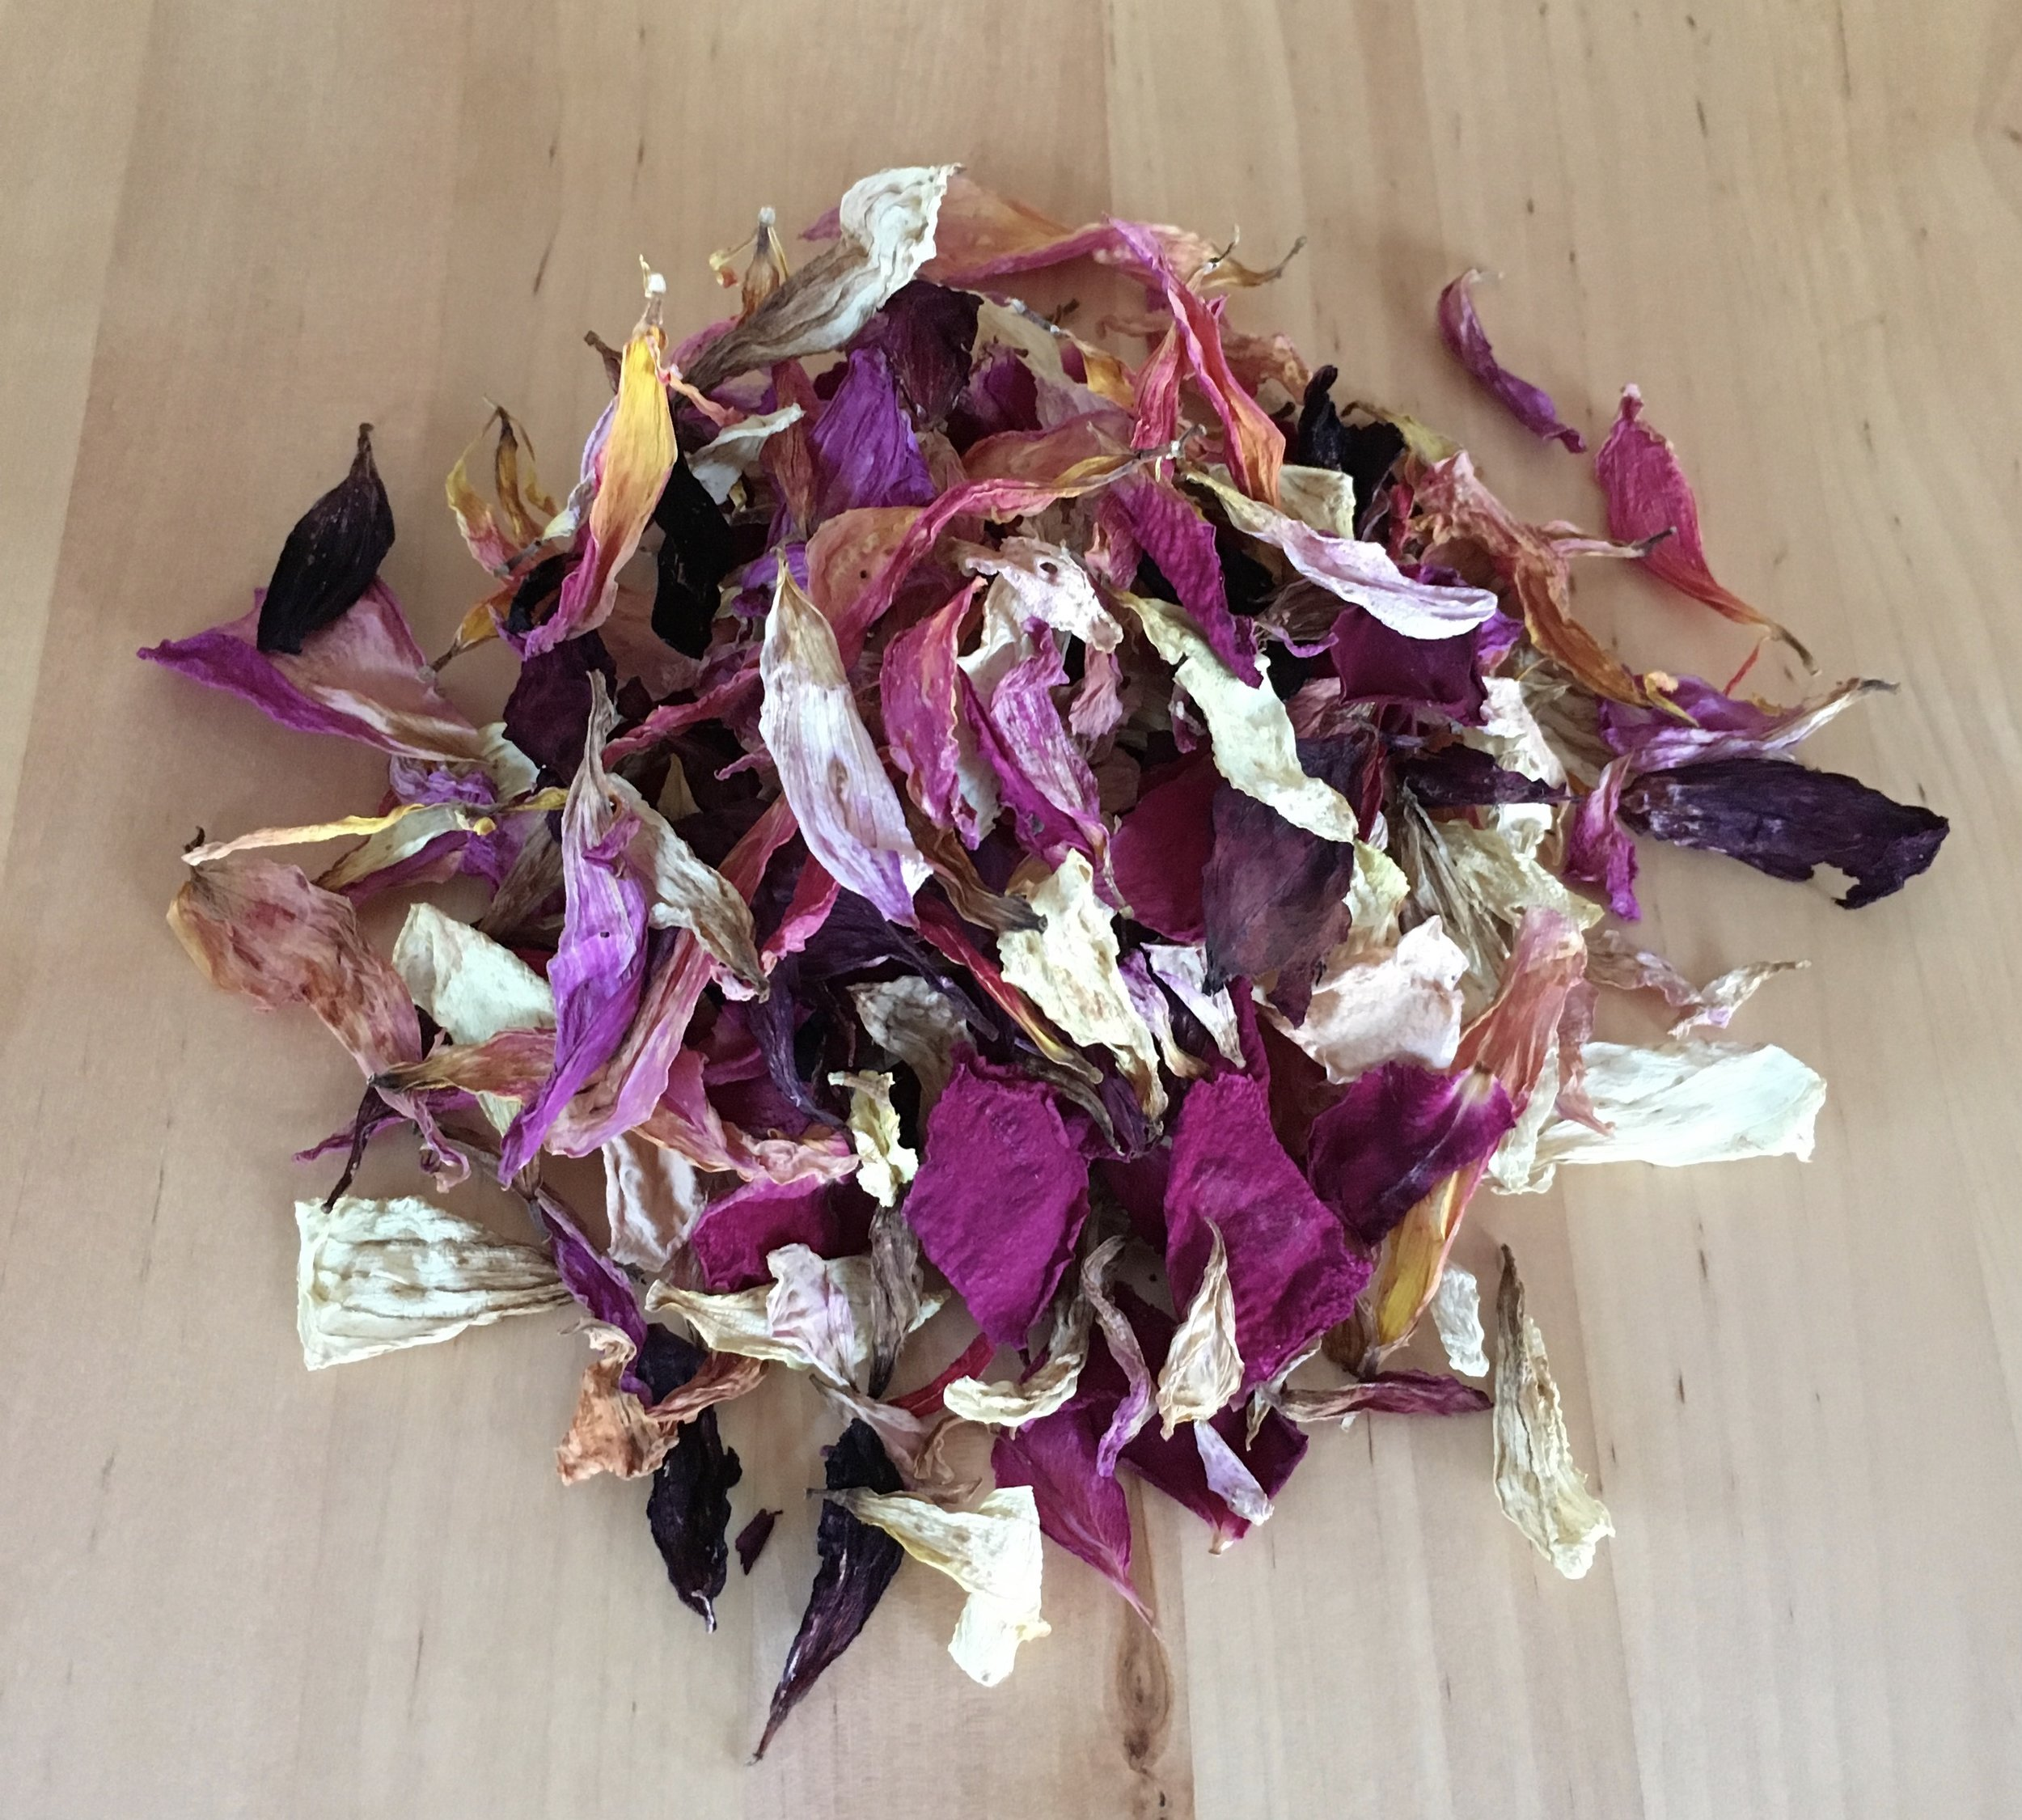 Eco-friendly - Dried or fresh petal confetti is available for an environmentally friendly option.